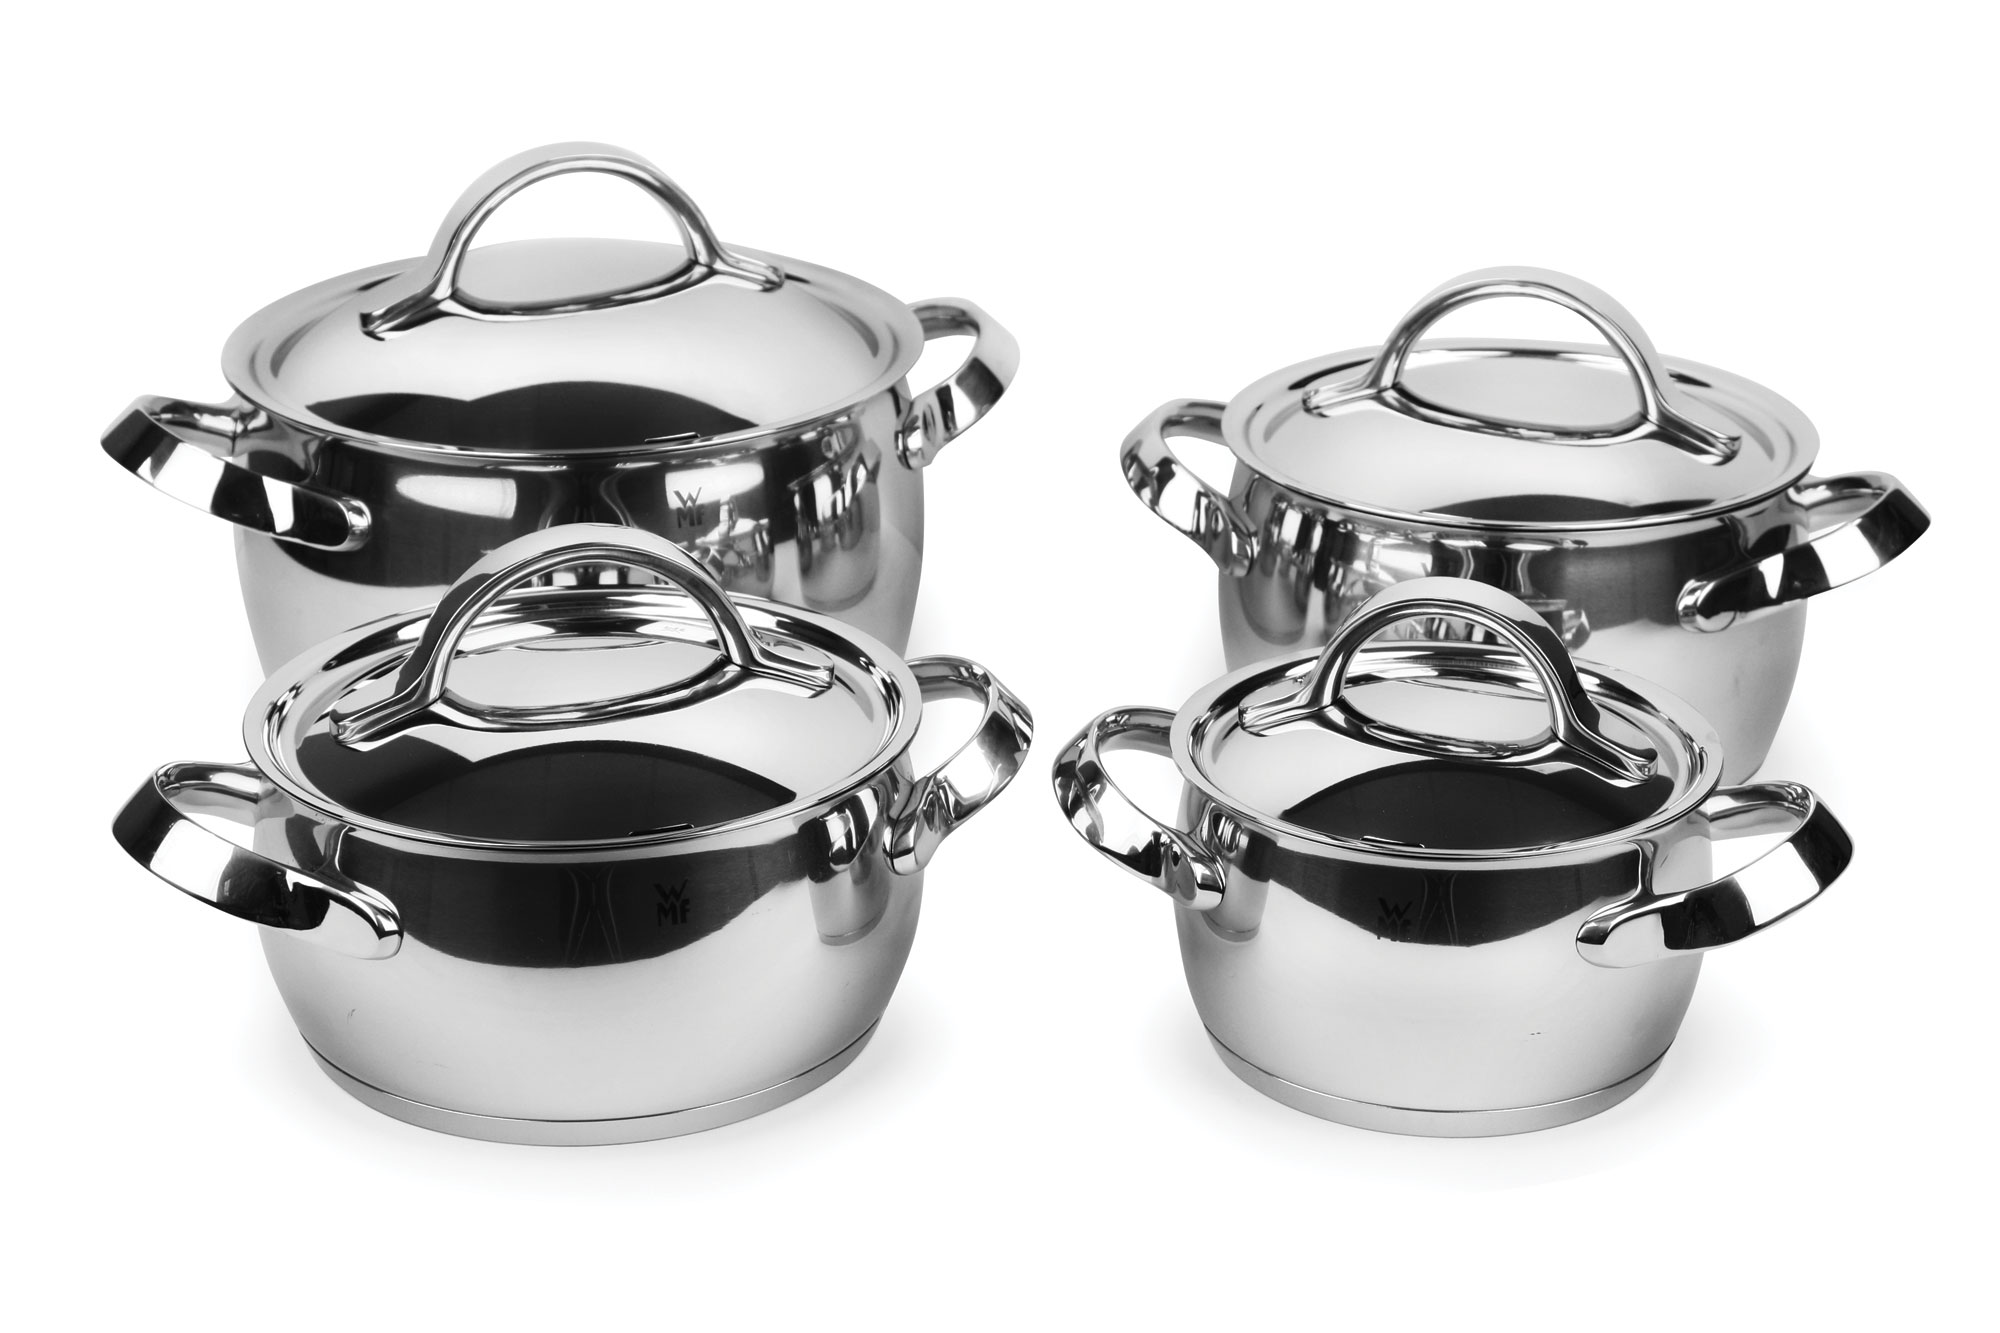 Wmf Concento Stainless Steel Cookware Set 8 Piece